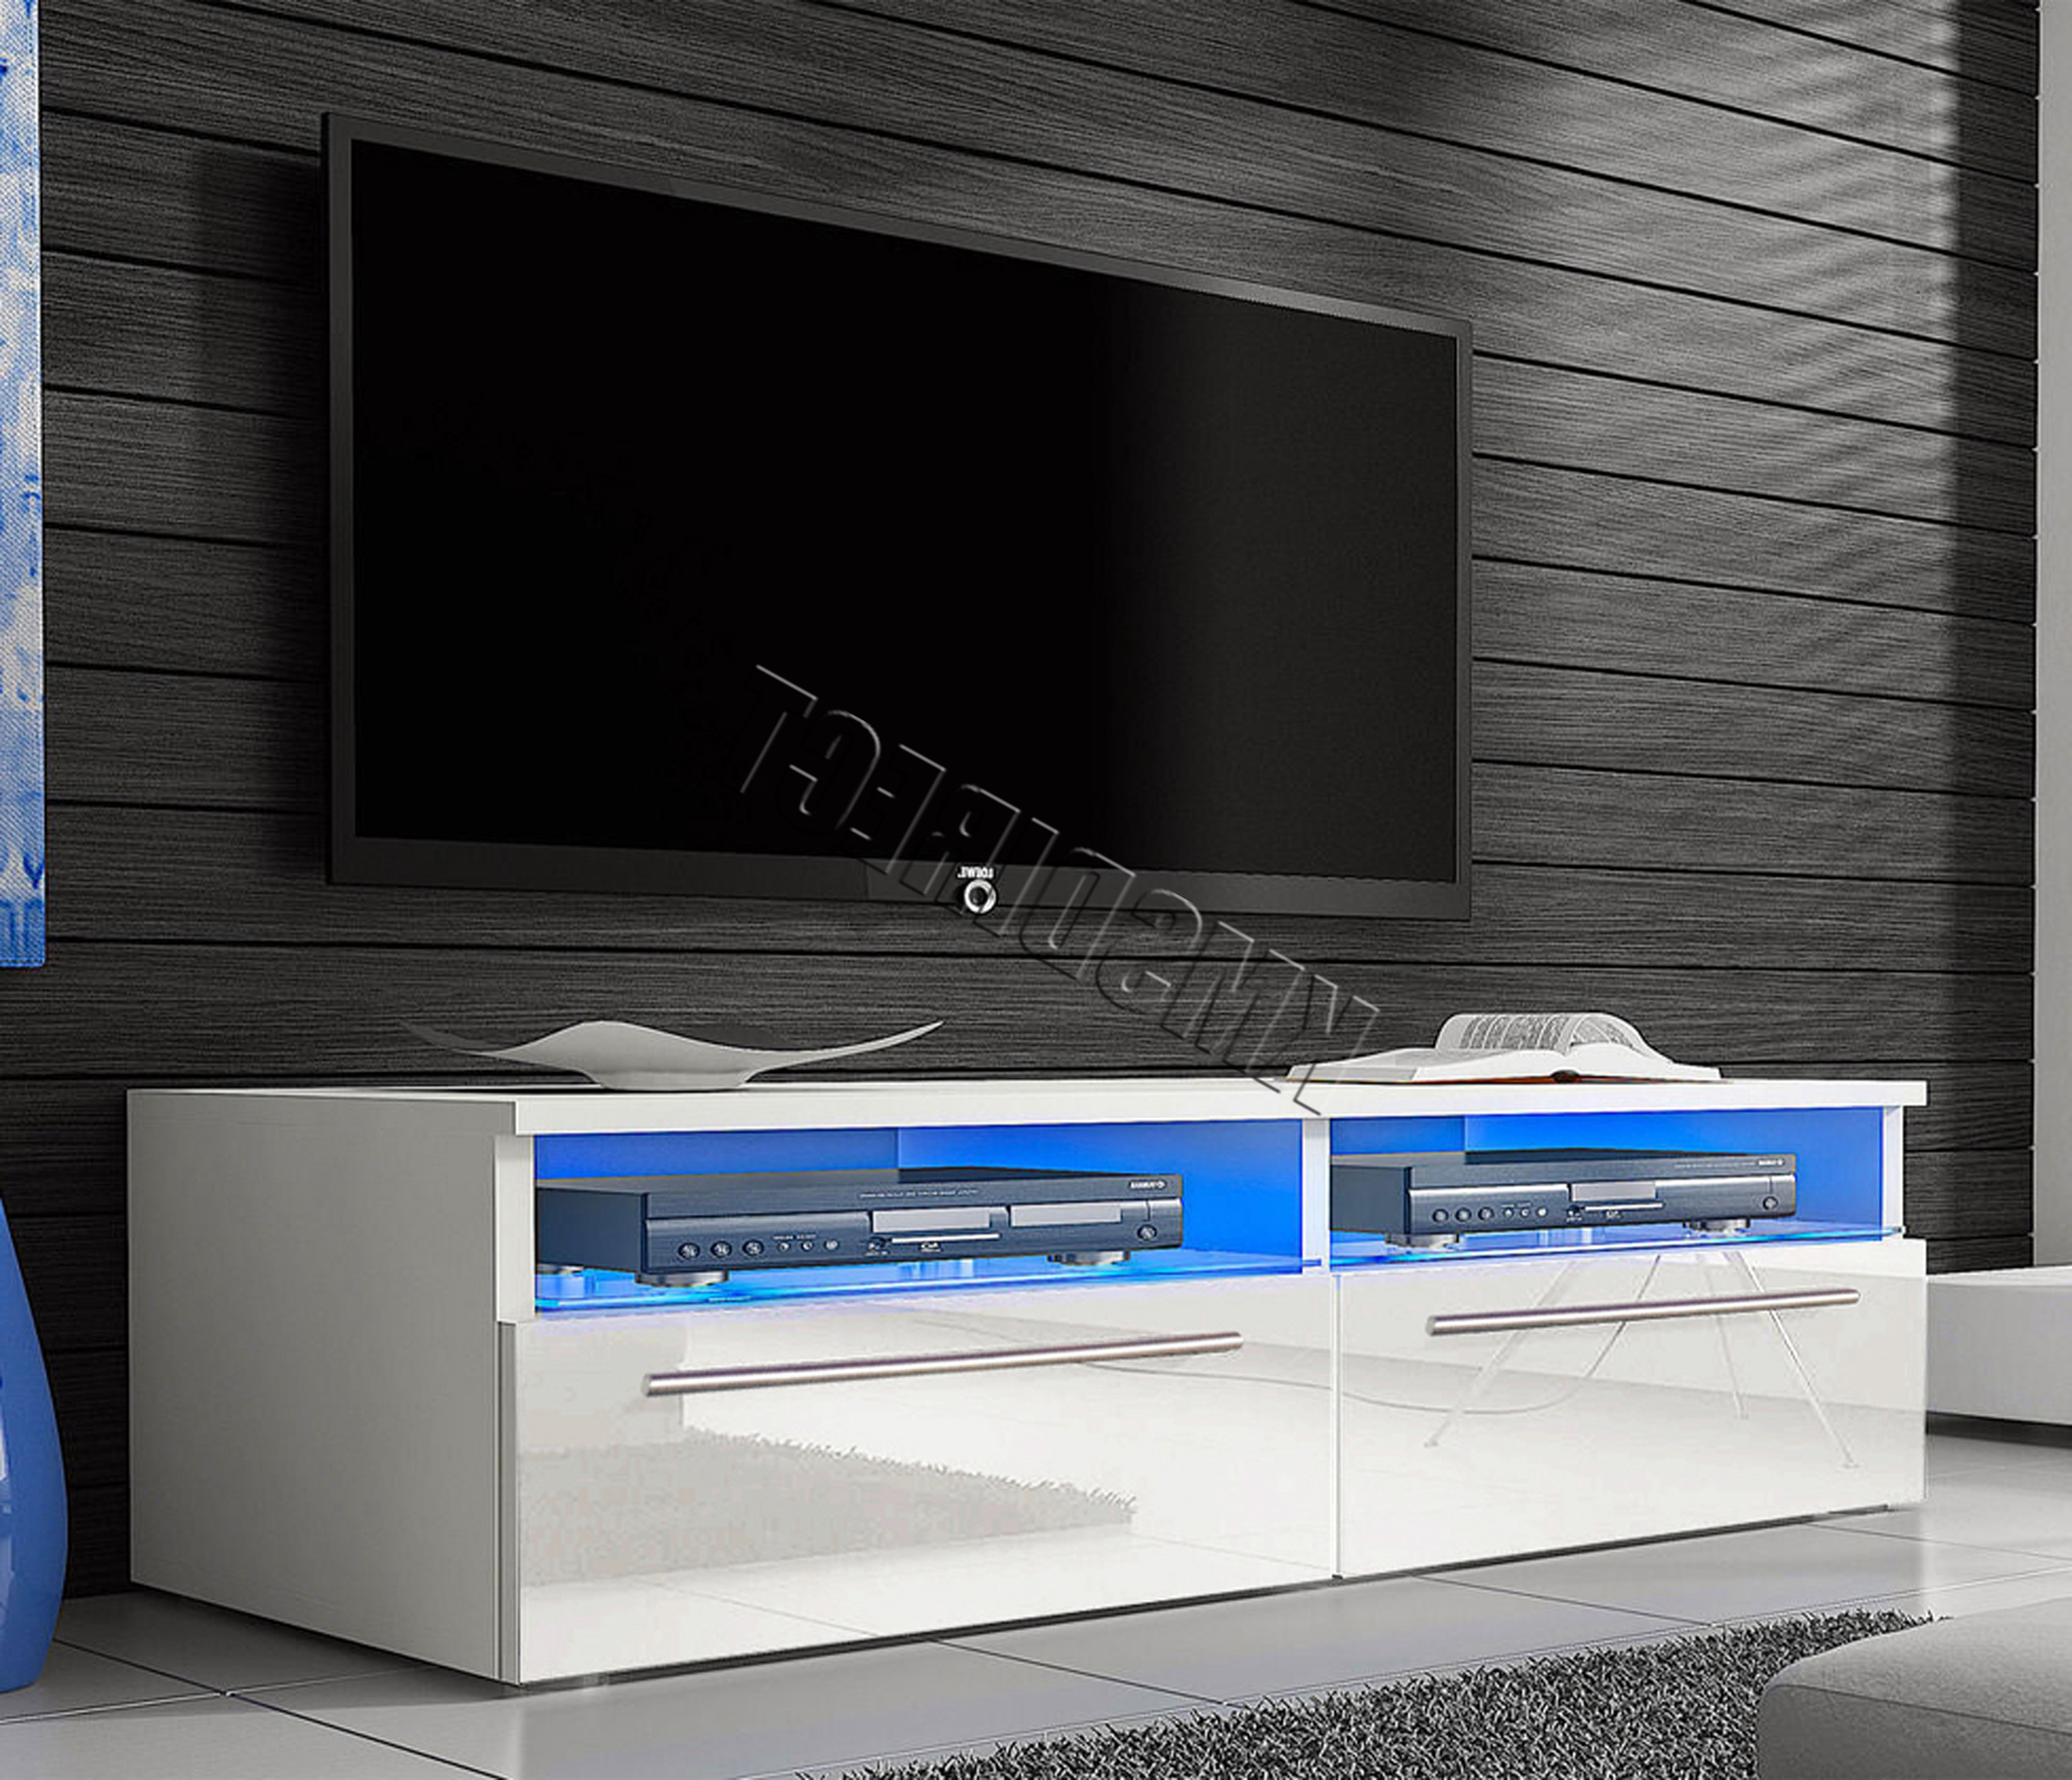 Westwood Modern Led Tv Unit Stand Cabinet – High Gloss Doors Matte For Well Known High Gloss White Tv Cabinets (View 17 of 20)